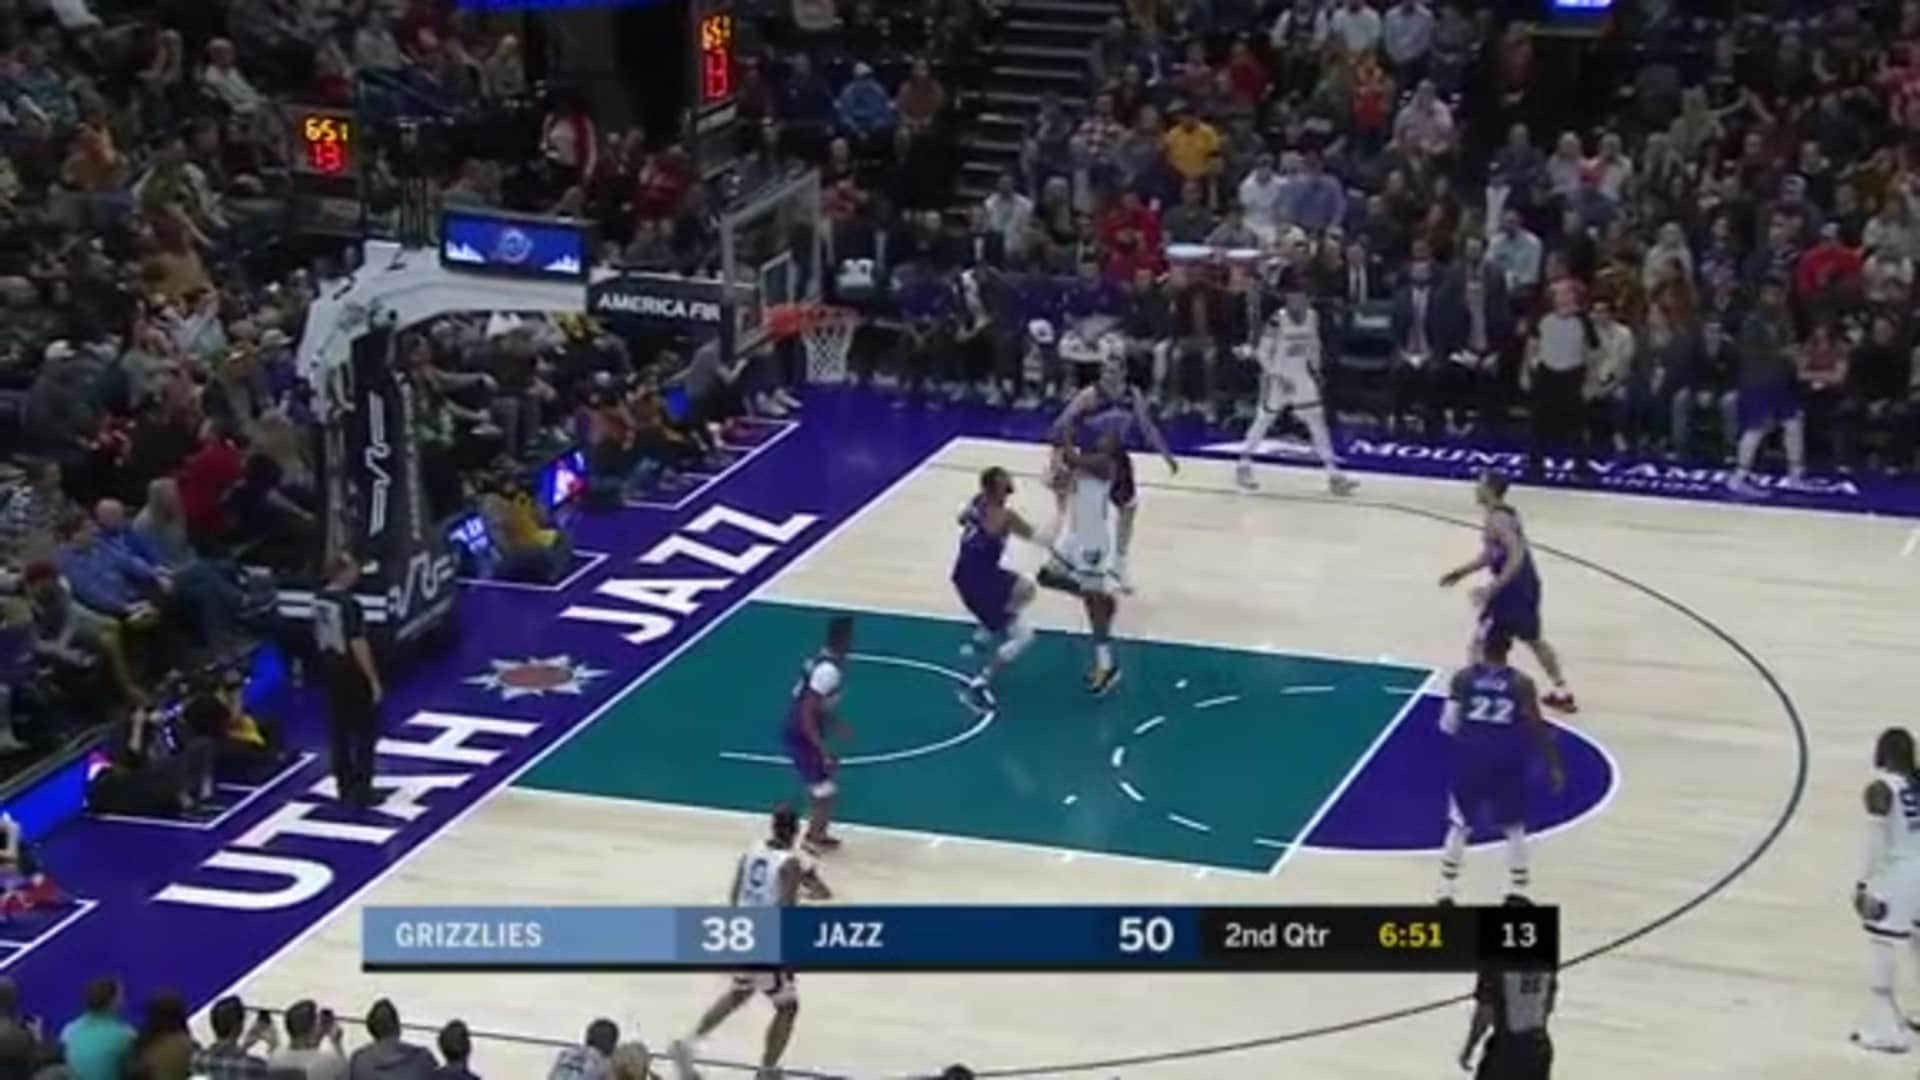 Grizzlies @ Jazz highlights 12.7.19